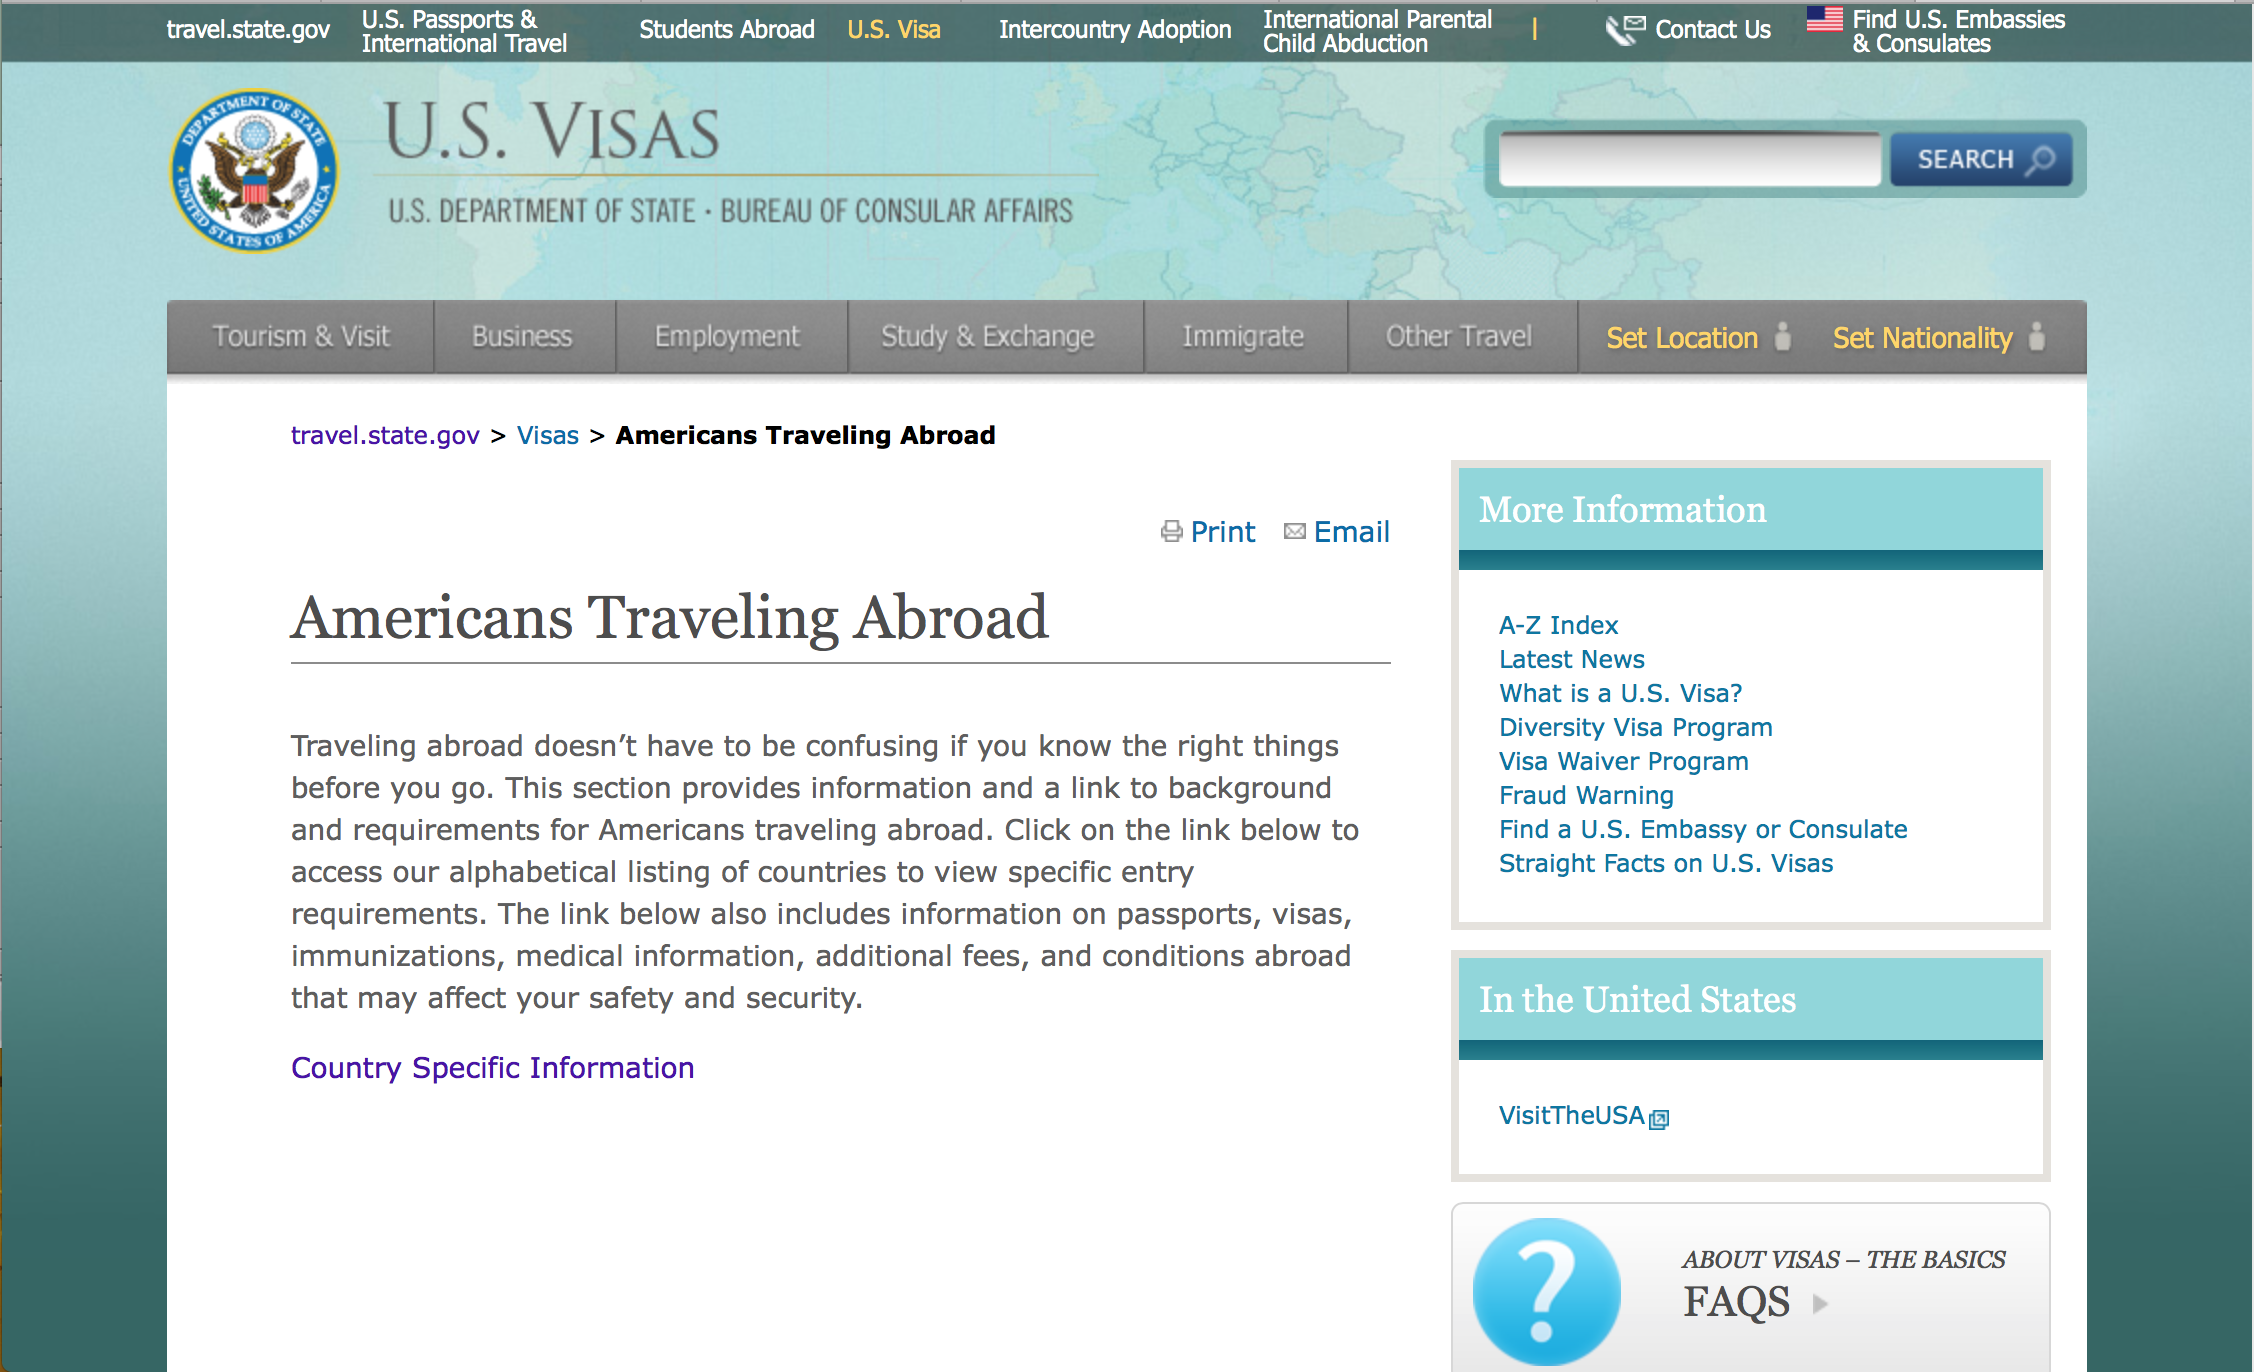 How to check out the trip abroad